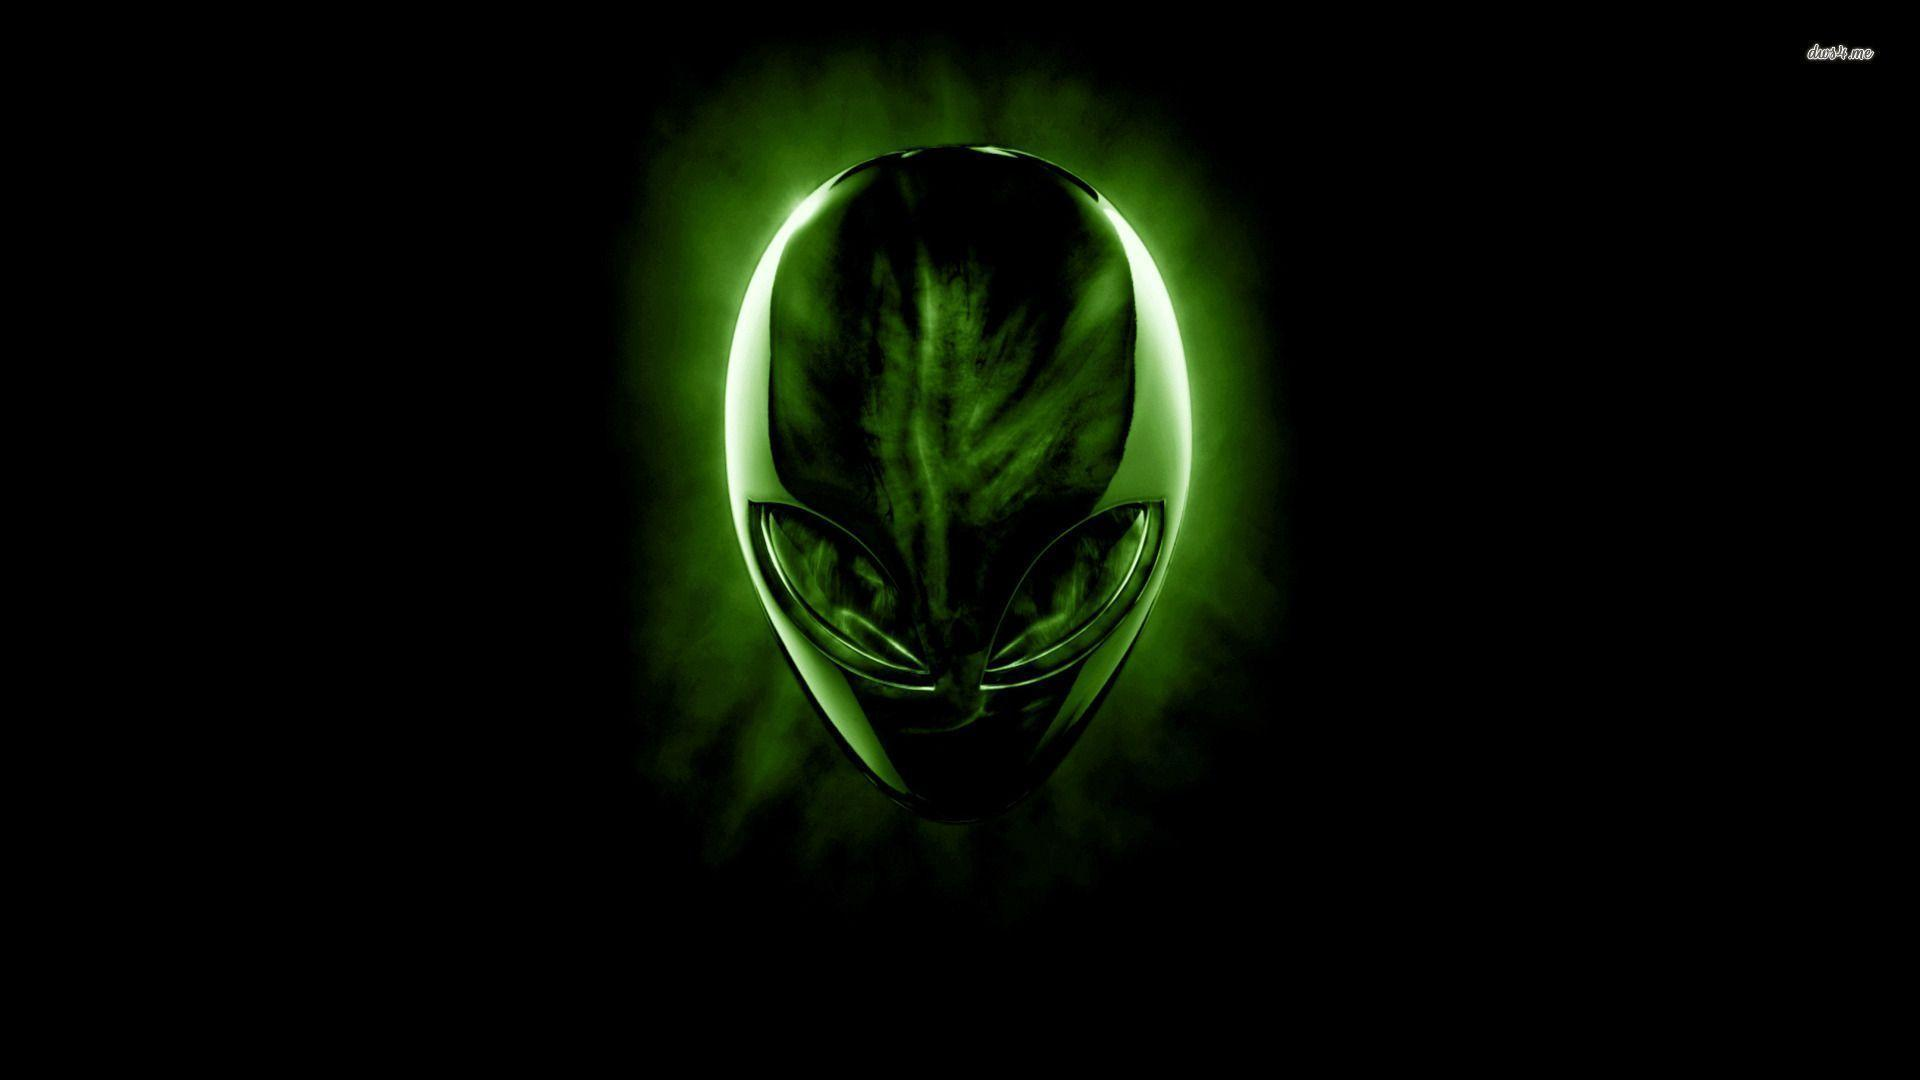 alienware wallpaper green hd - photo #12